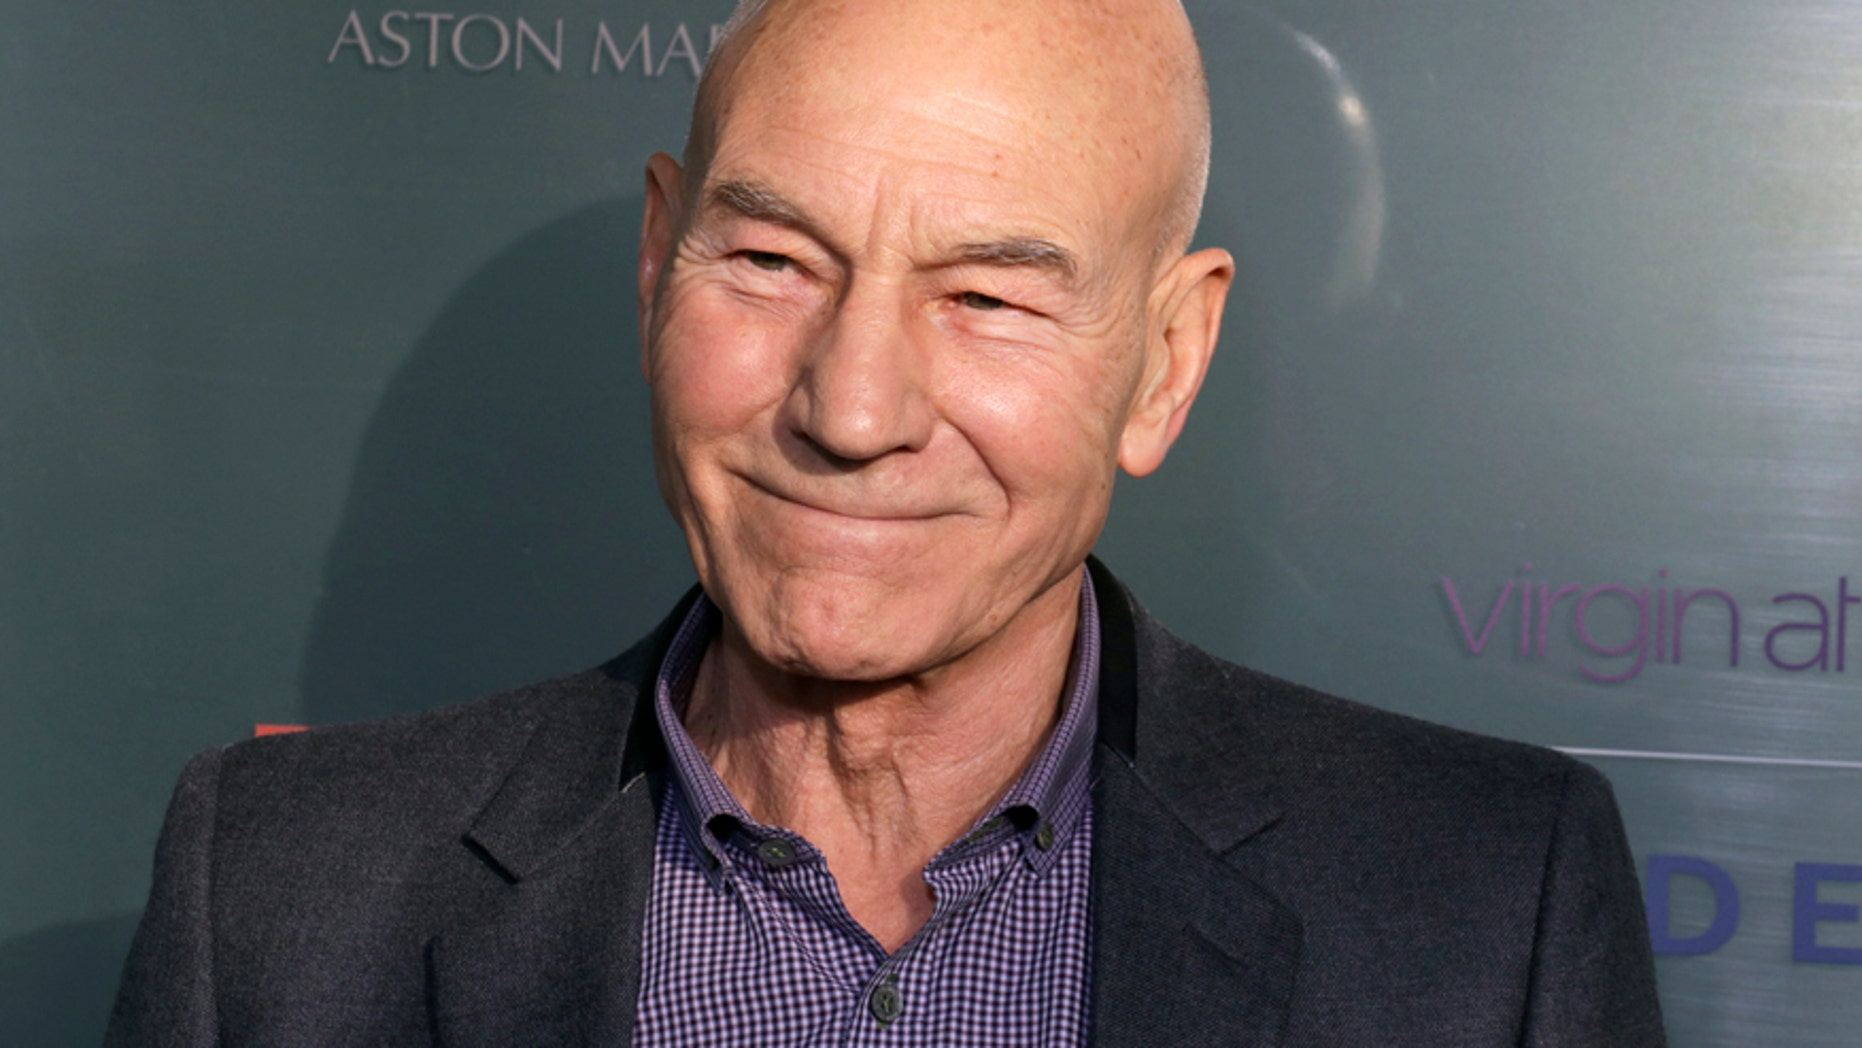 Actor Patrick Stewart attends the GREAT British film reception honoring the British nominees of the 87th Annual Academy Awards at The London West Hollywood in West Hollywood, California February 20, 2015.